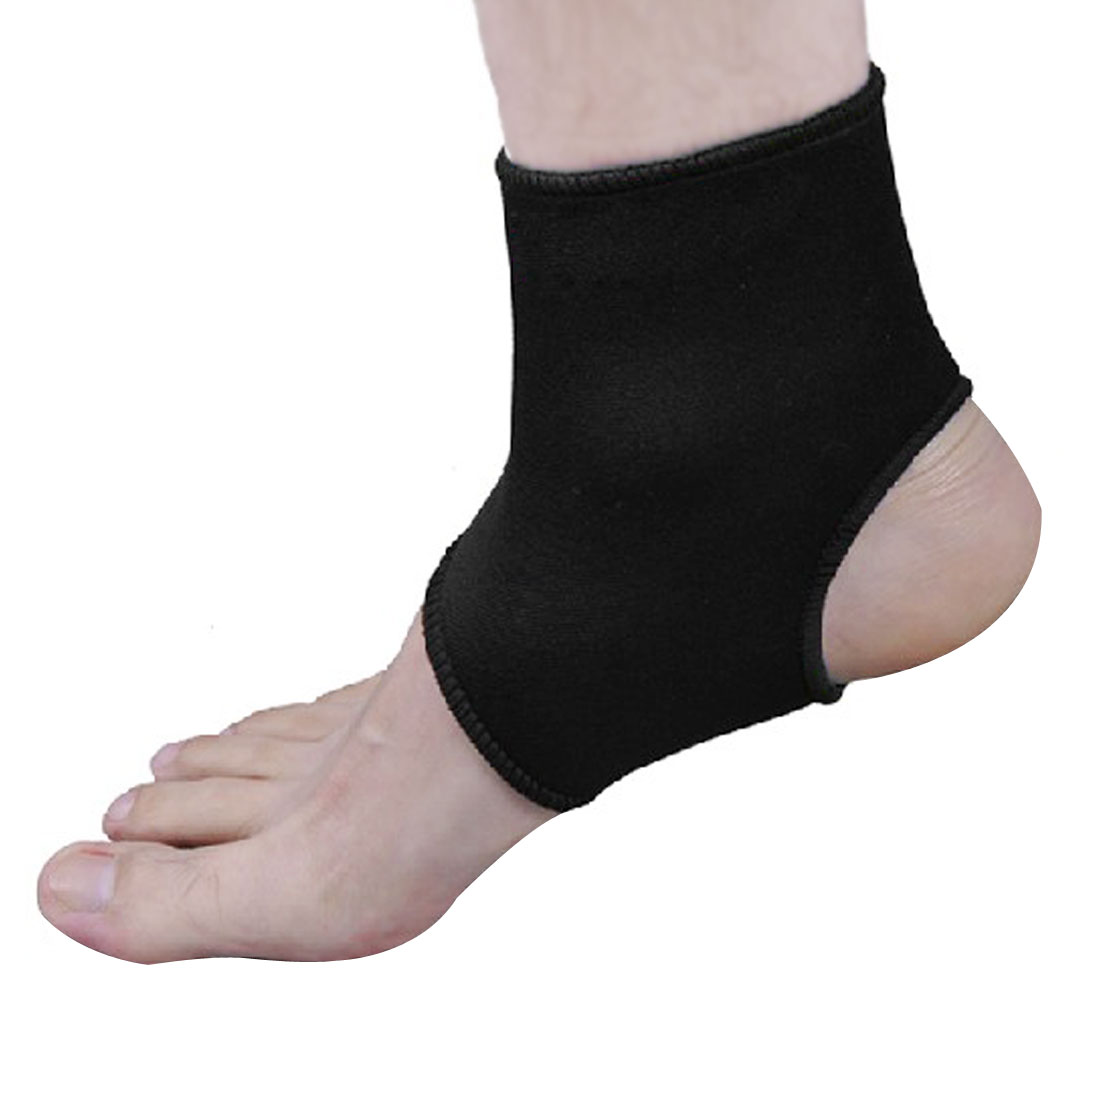 Gym Exercise Neoprene Shock Resistant Guard Ankle Support Brace Protector Black